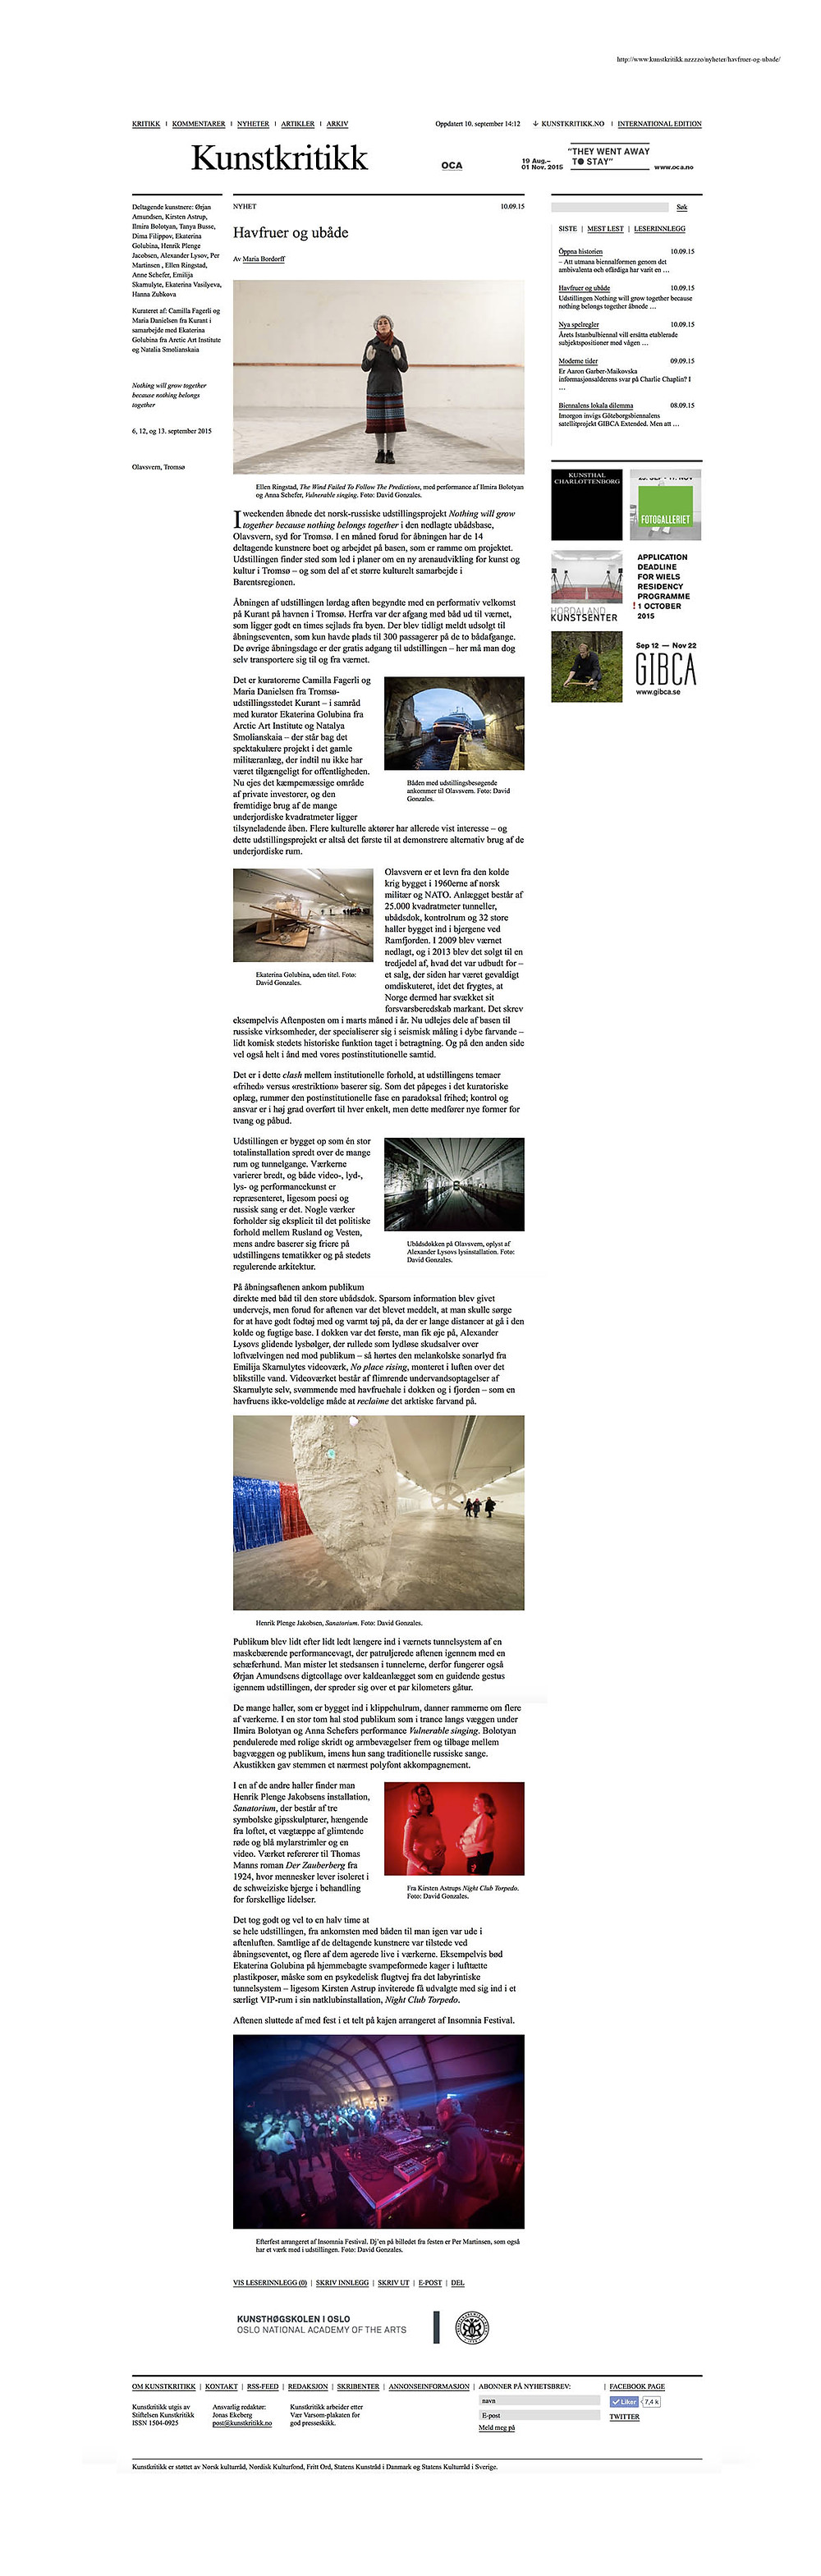 Maria Bordoff / Kunstkritikk.no 20150910 - Article about the exhibition 'Nothing Will Grow Together Because Nothing Belongs Together'